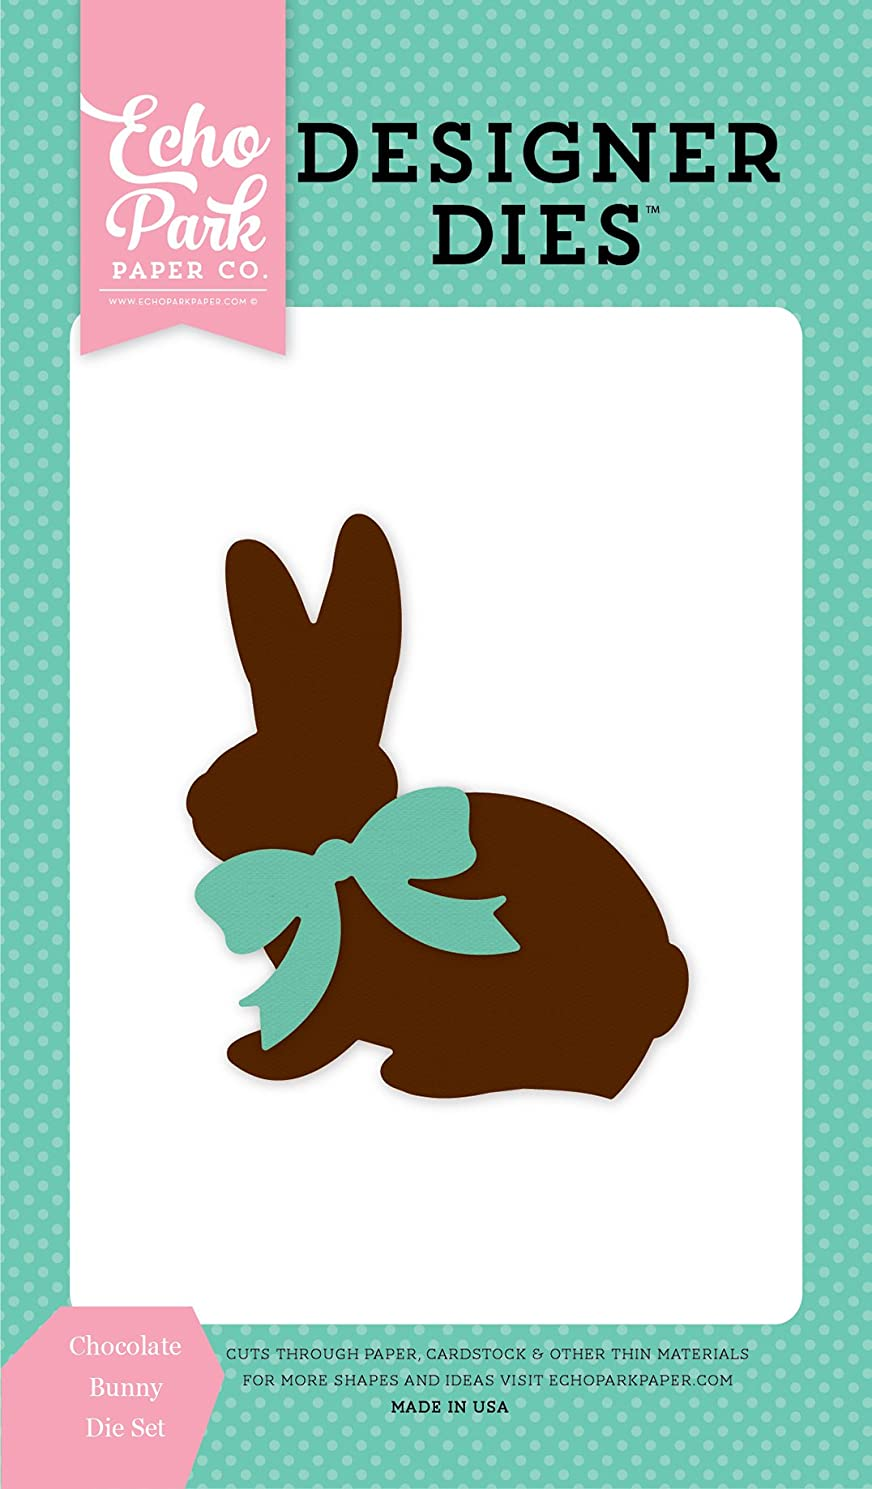 Echo Park Paper Company Chocolate Bunny Die Set